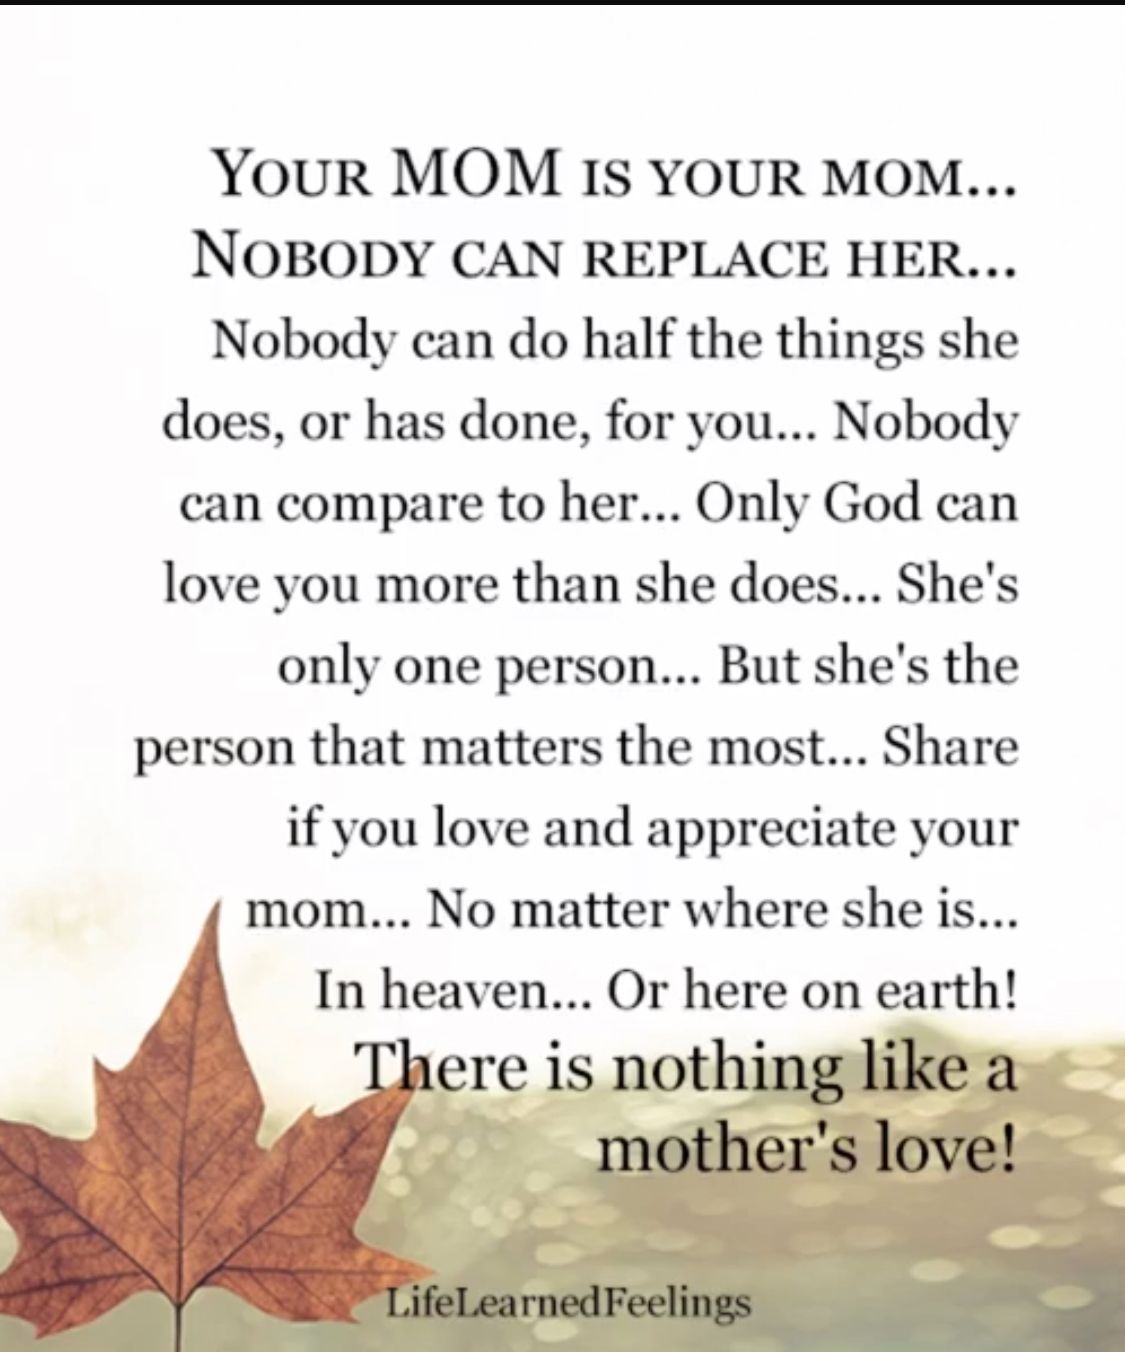 Mom - mothers